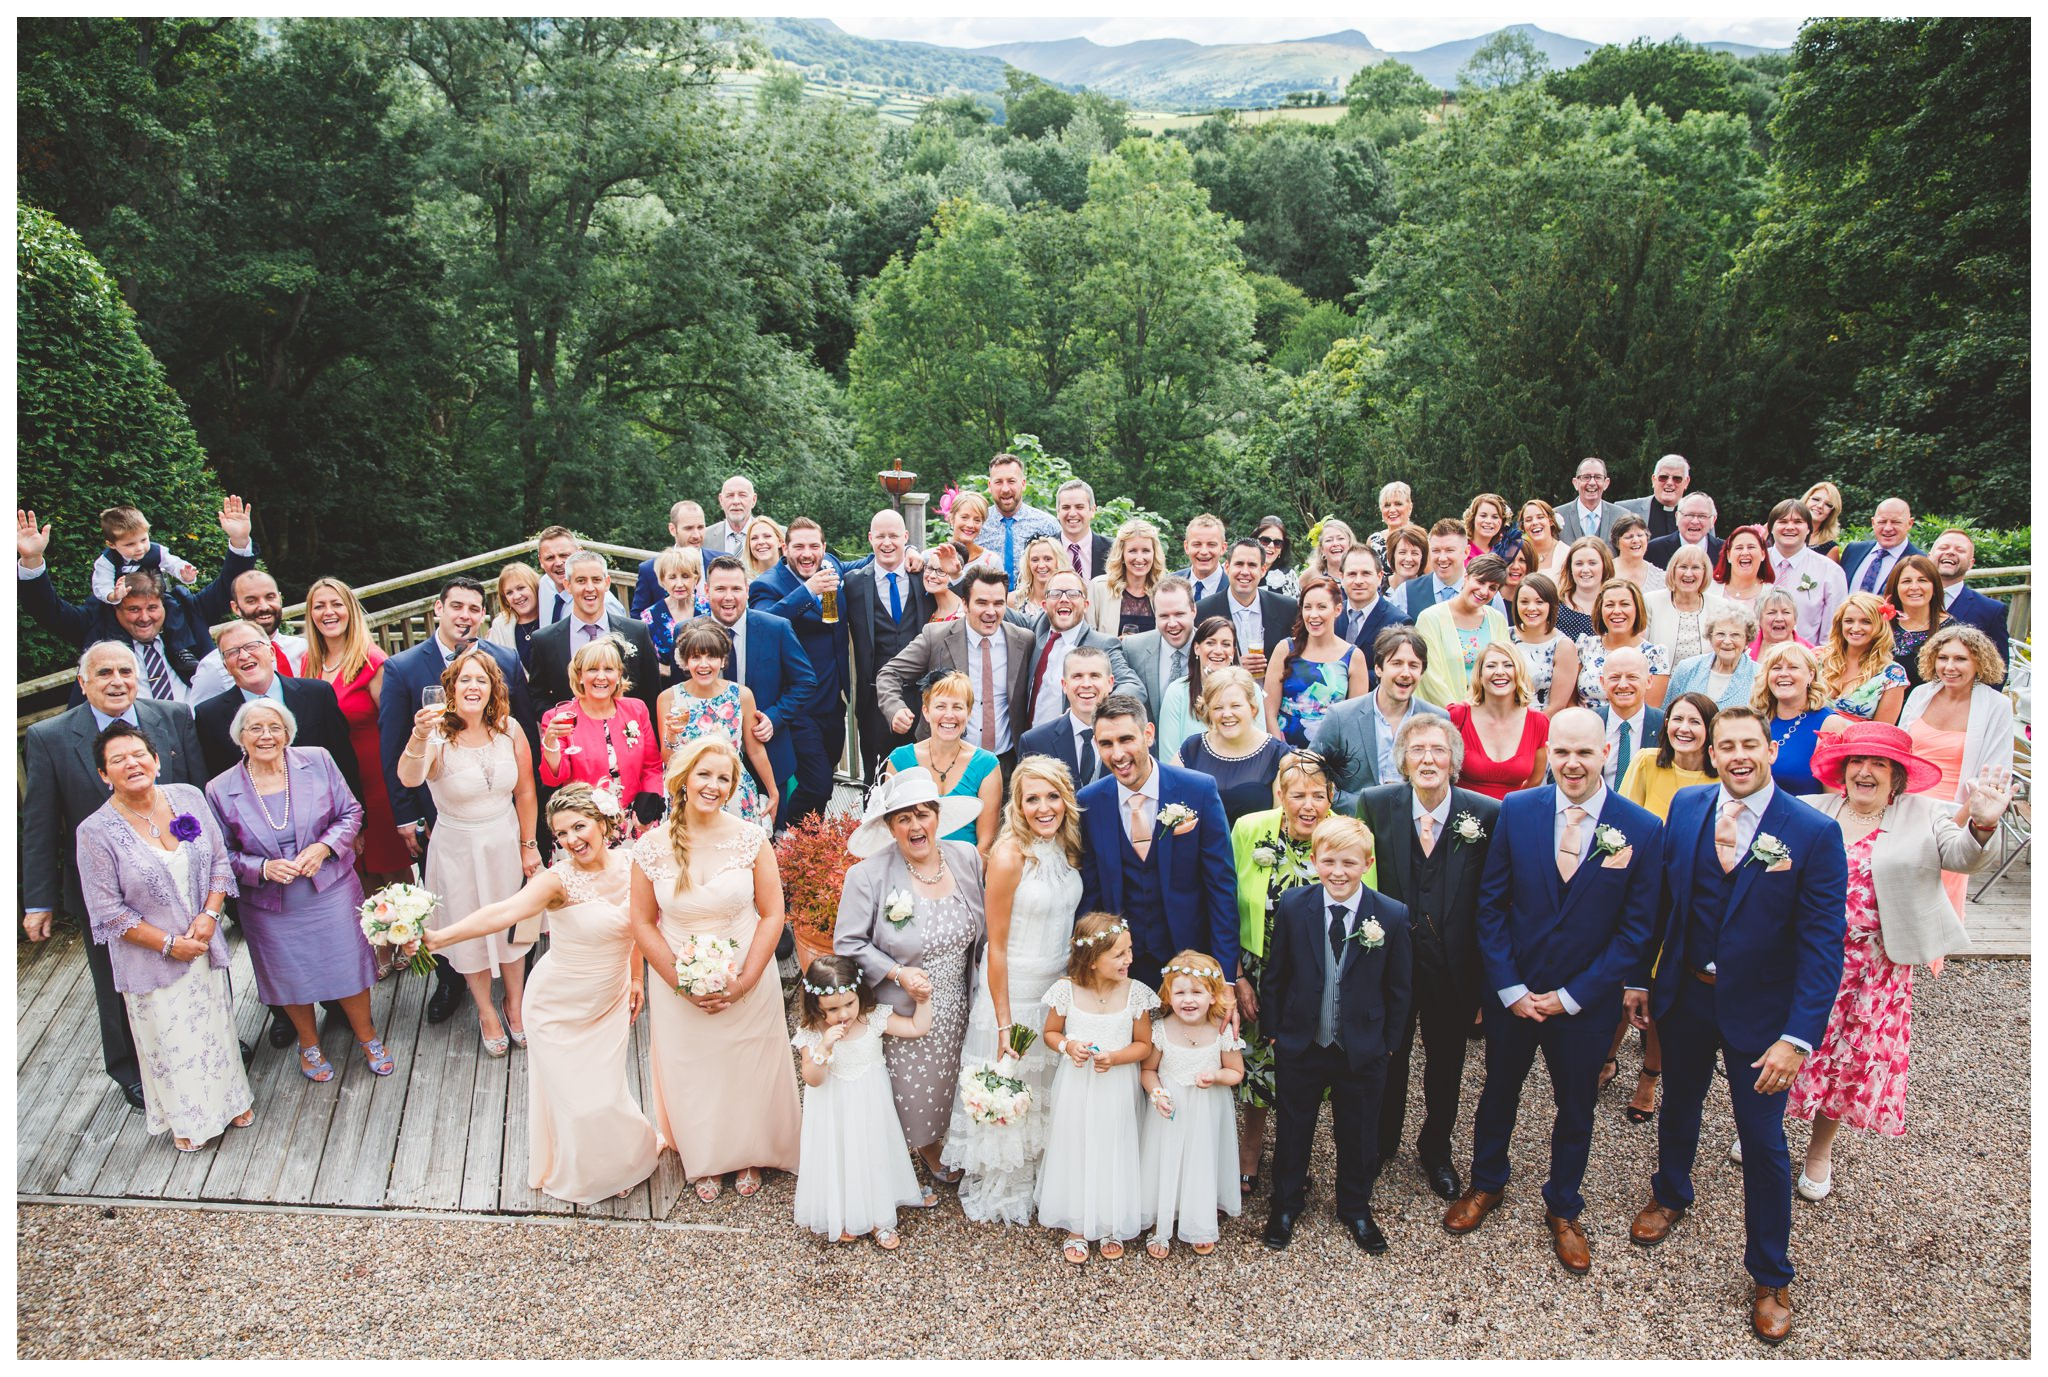 Richard Savage Photography - Wedding - Peterstone Court Brecon - 2016-05-11_0035